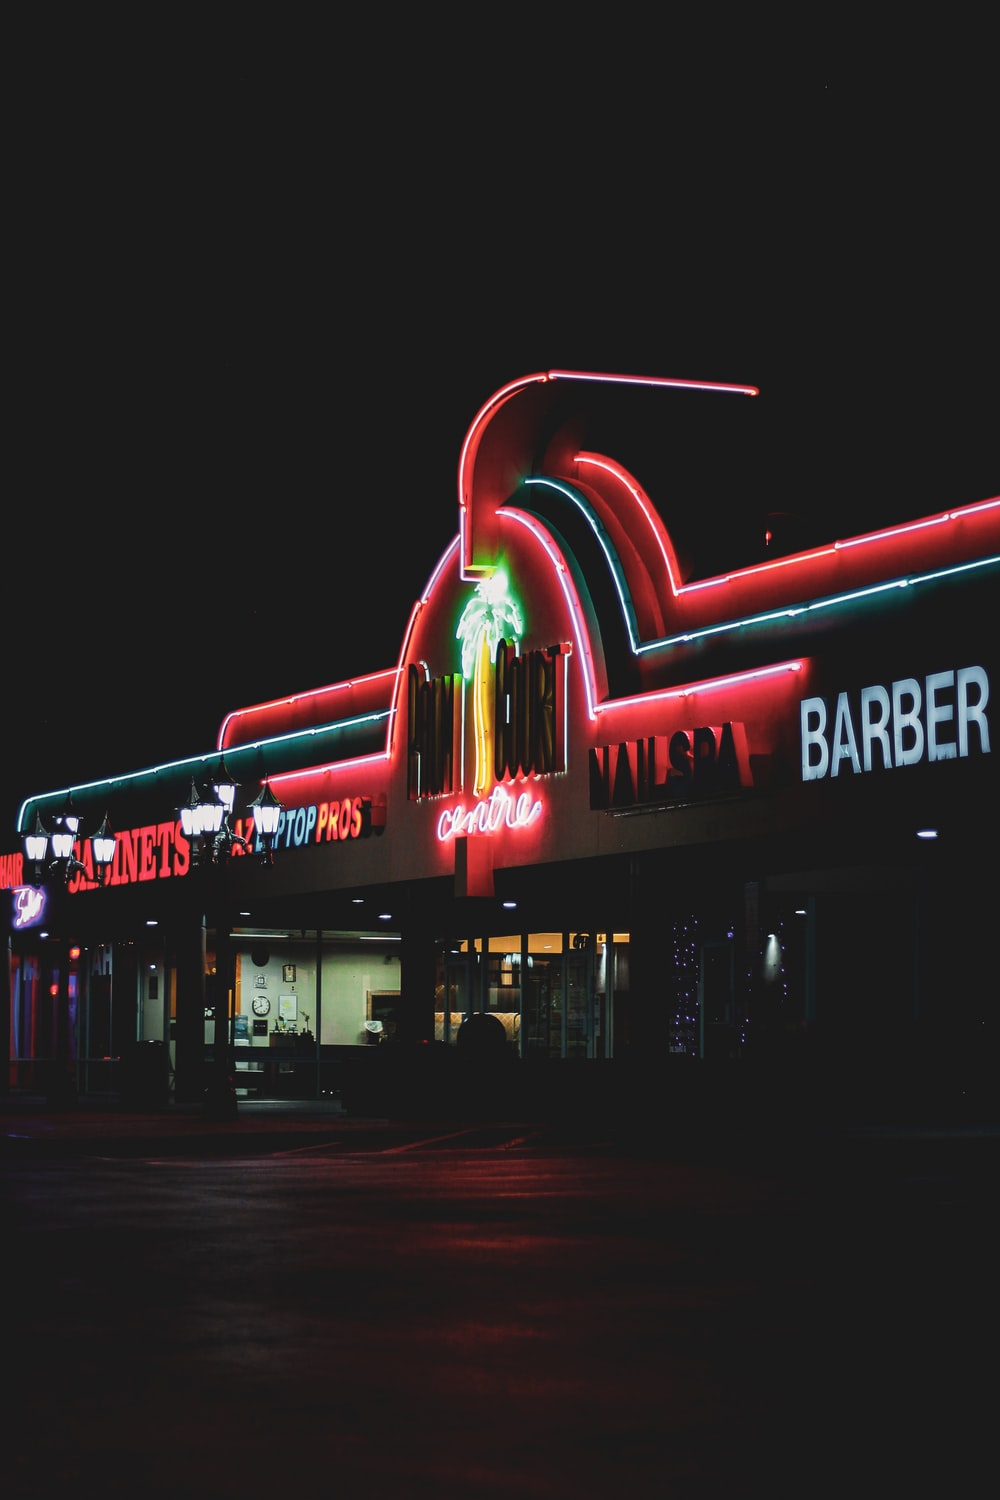 building with neon signage